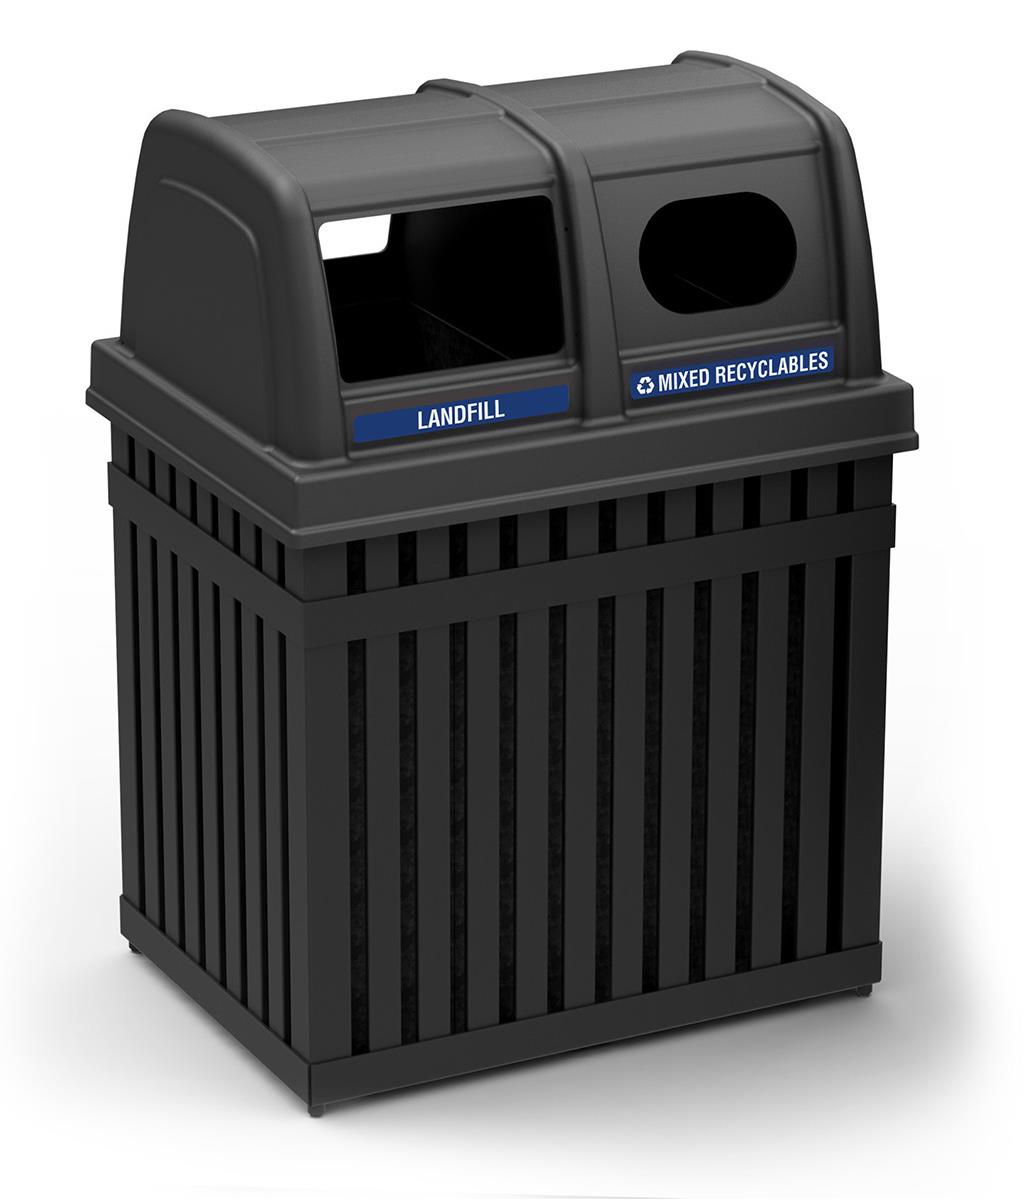 Dual Recycling And Garbage Container Waste Management Kiosk